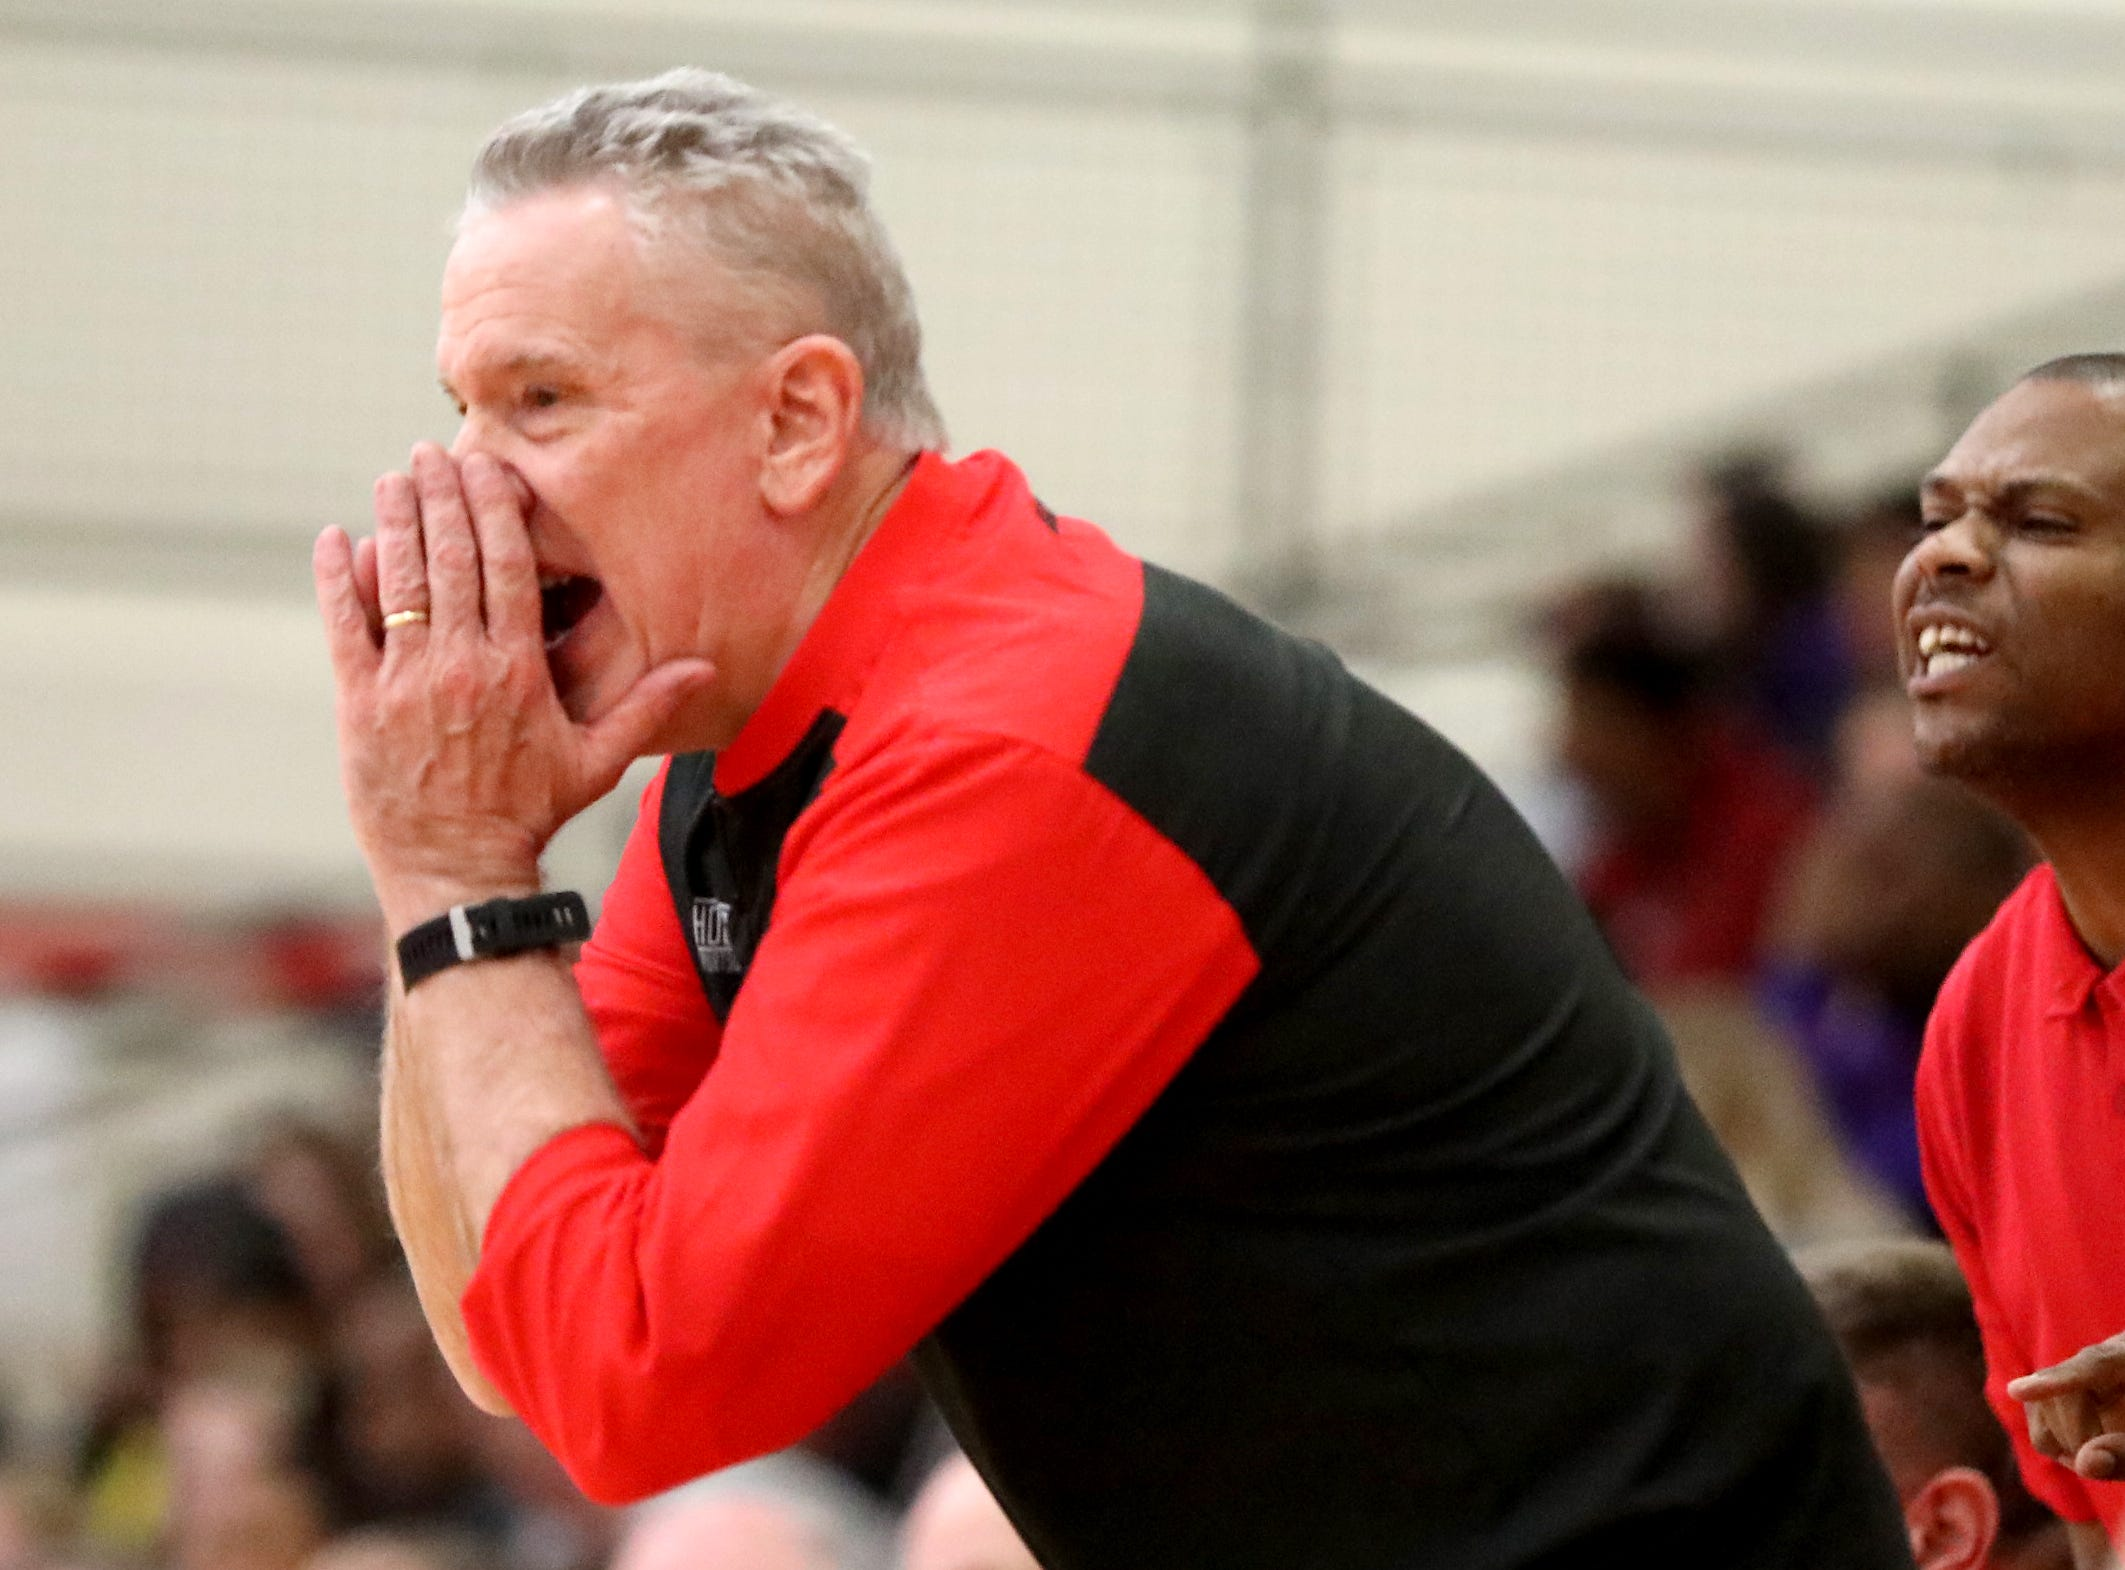 Lakota West head coach Jim Leon reacts during the Firebirds basketball game against Middletown, Tuesday, Dec. 11,2018.